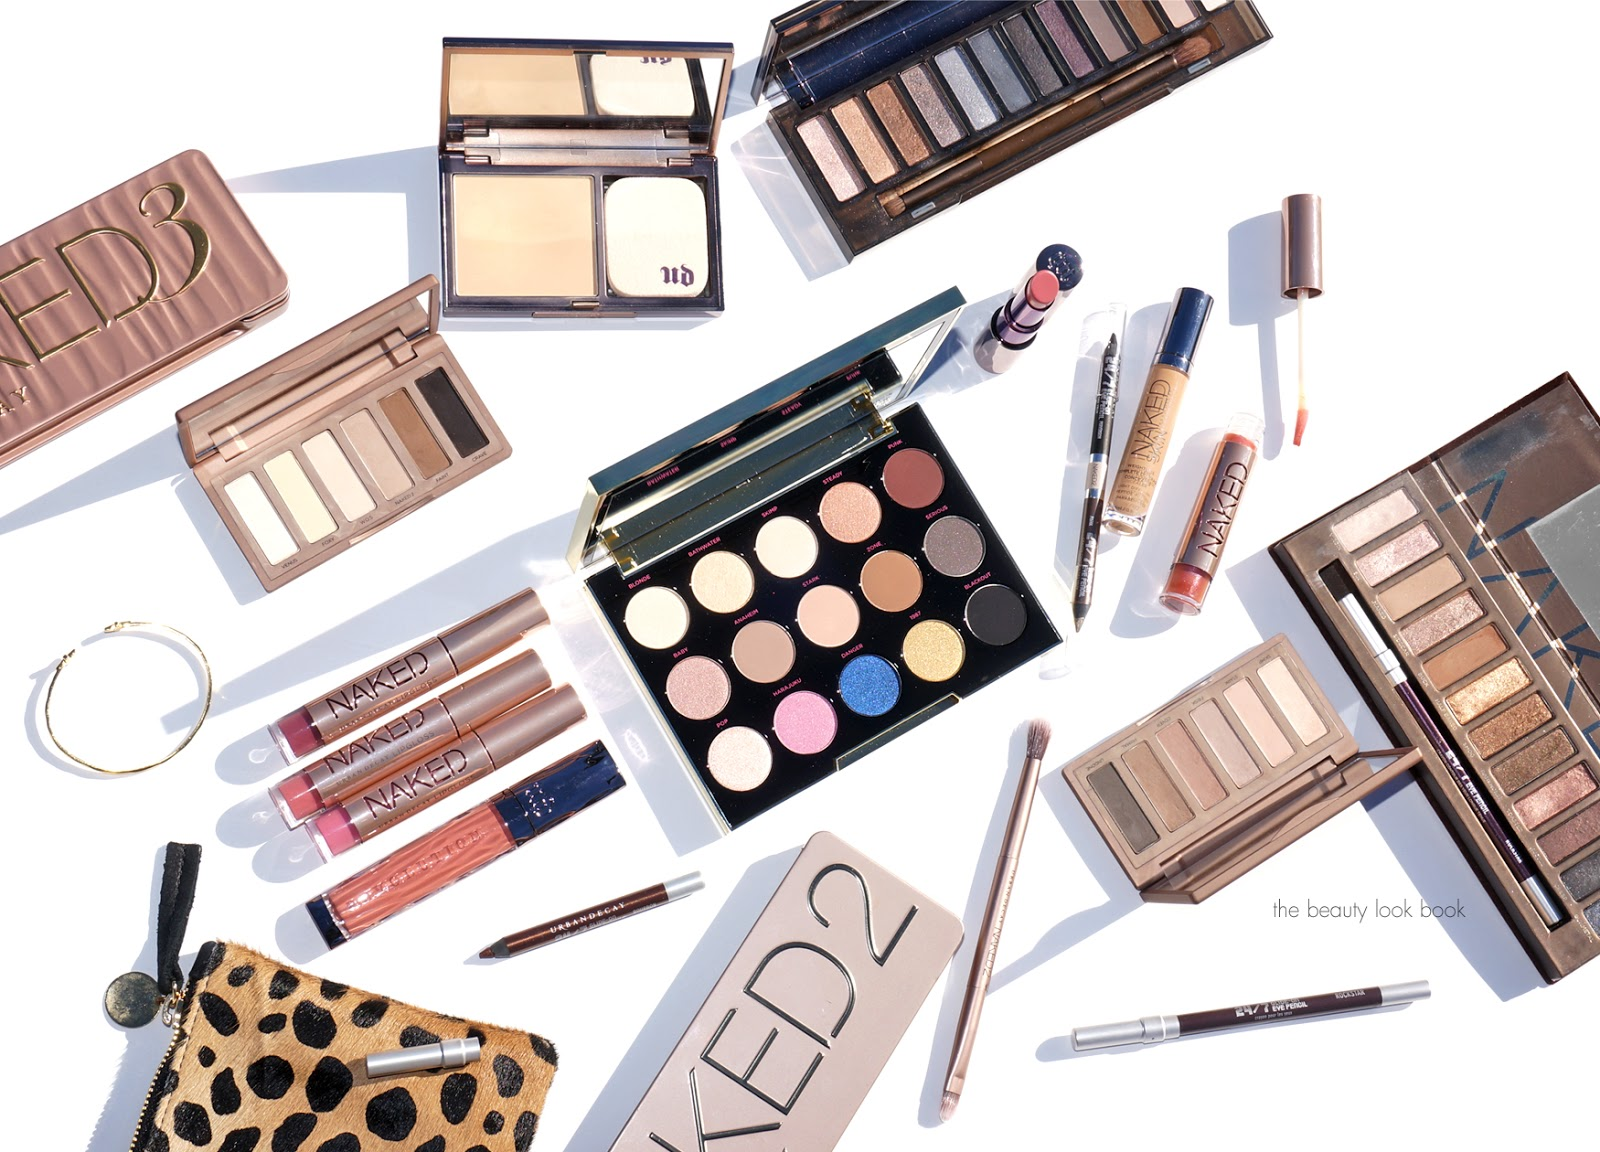 The Urban Decay Spring 2014 Collection: Nakedness Strikes